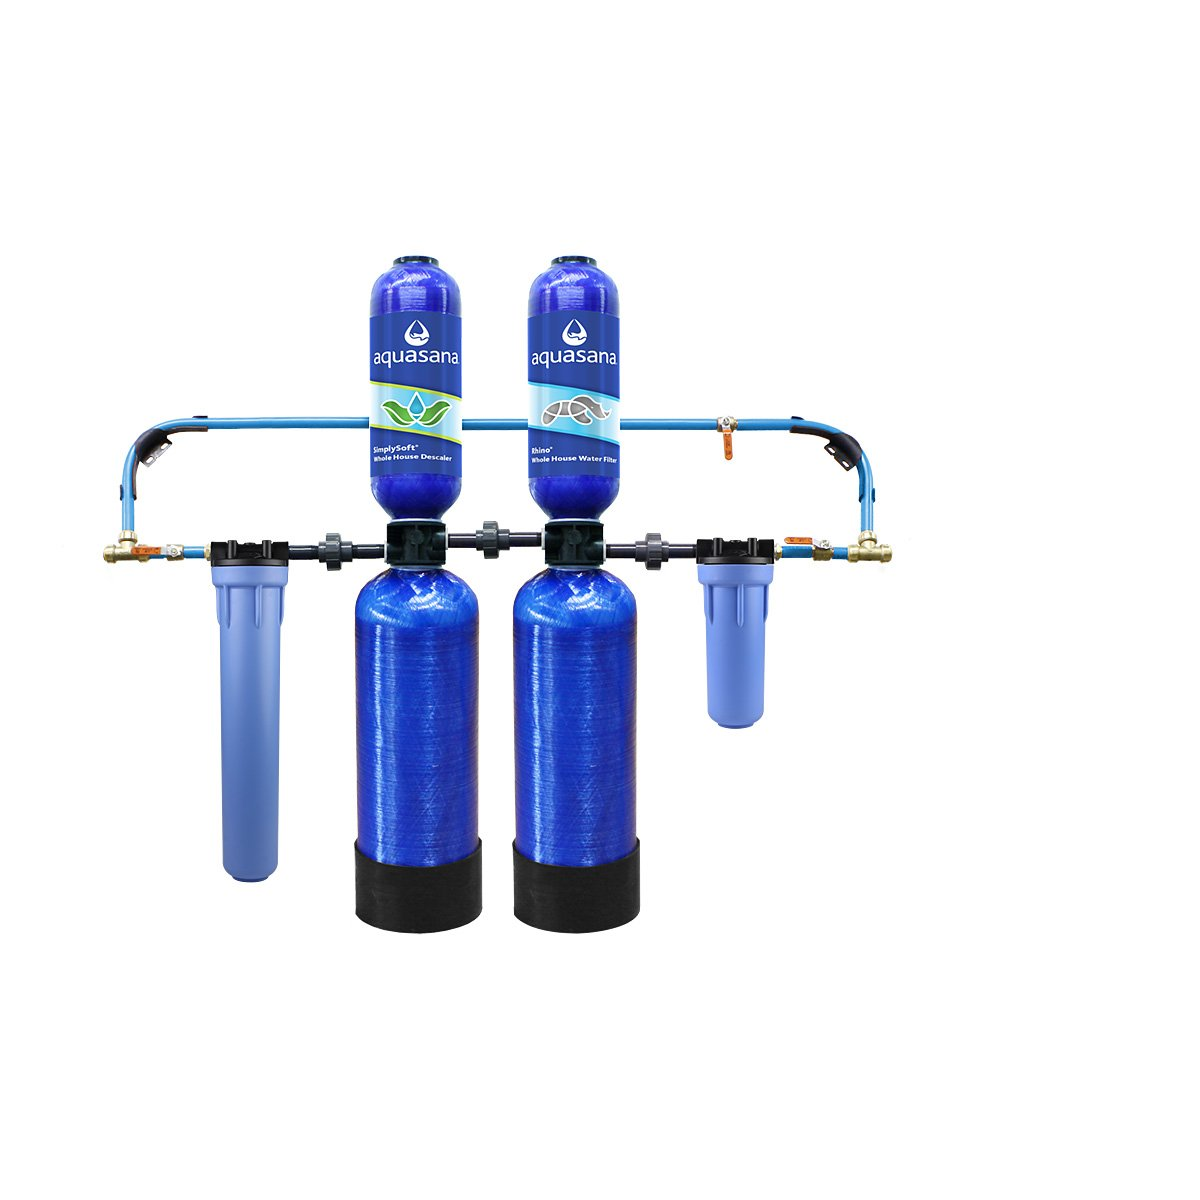 Whole House Water Filter with Salt-Free Softener and Professional Installation Kit